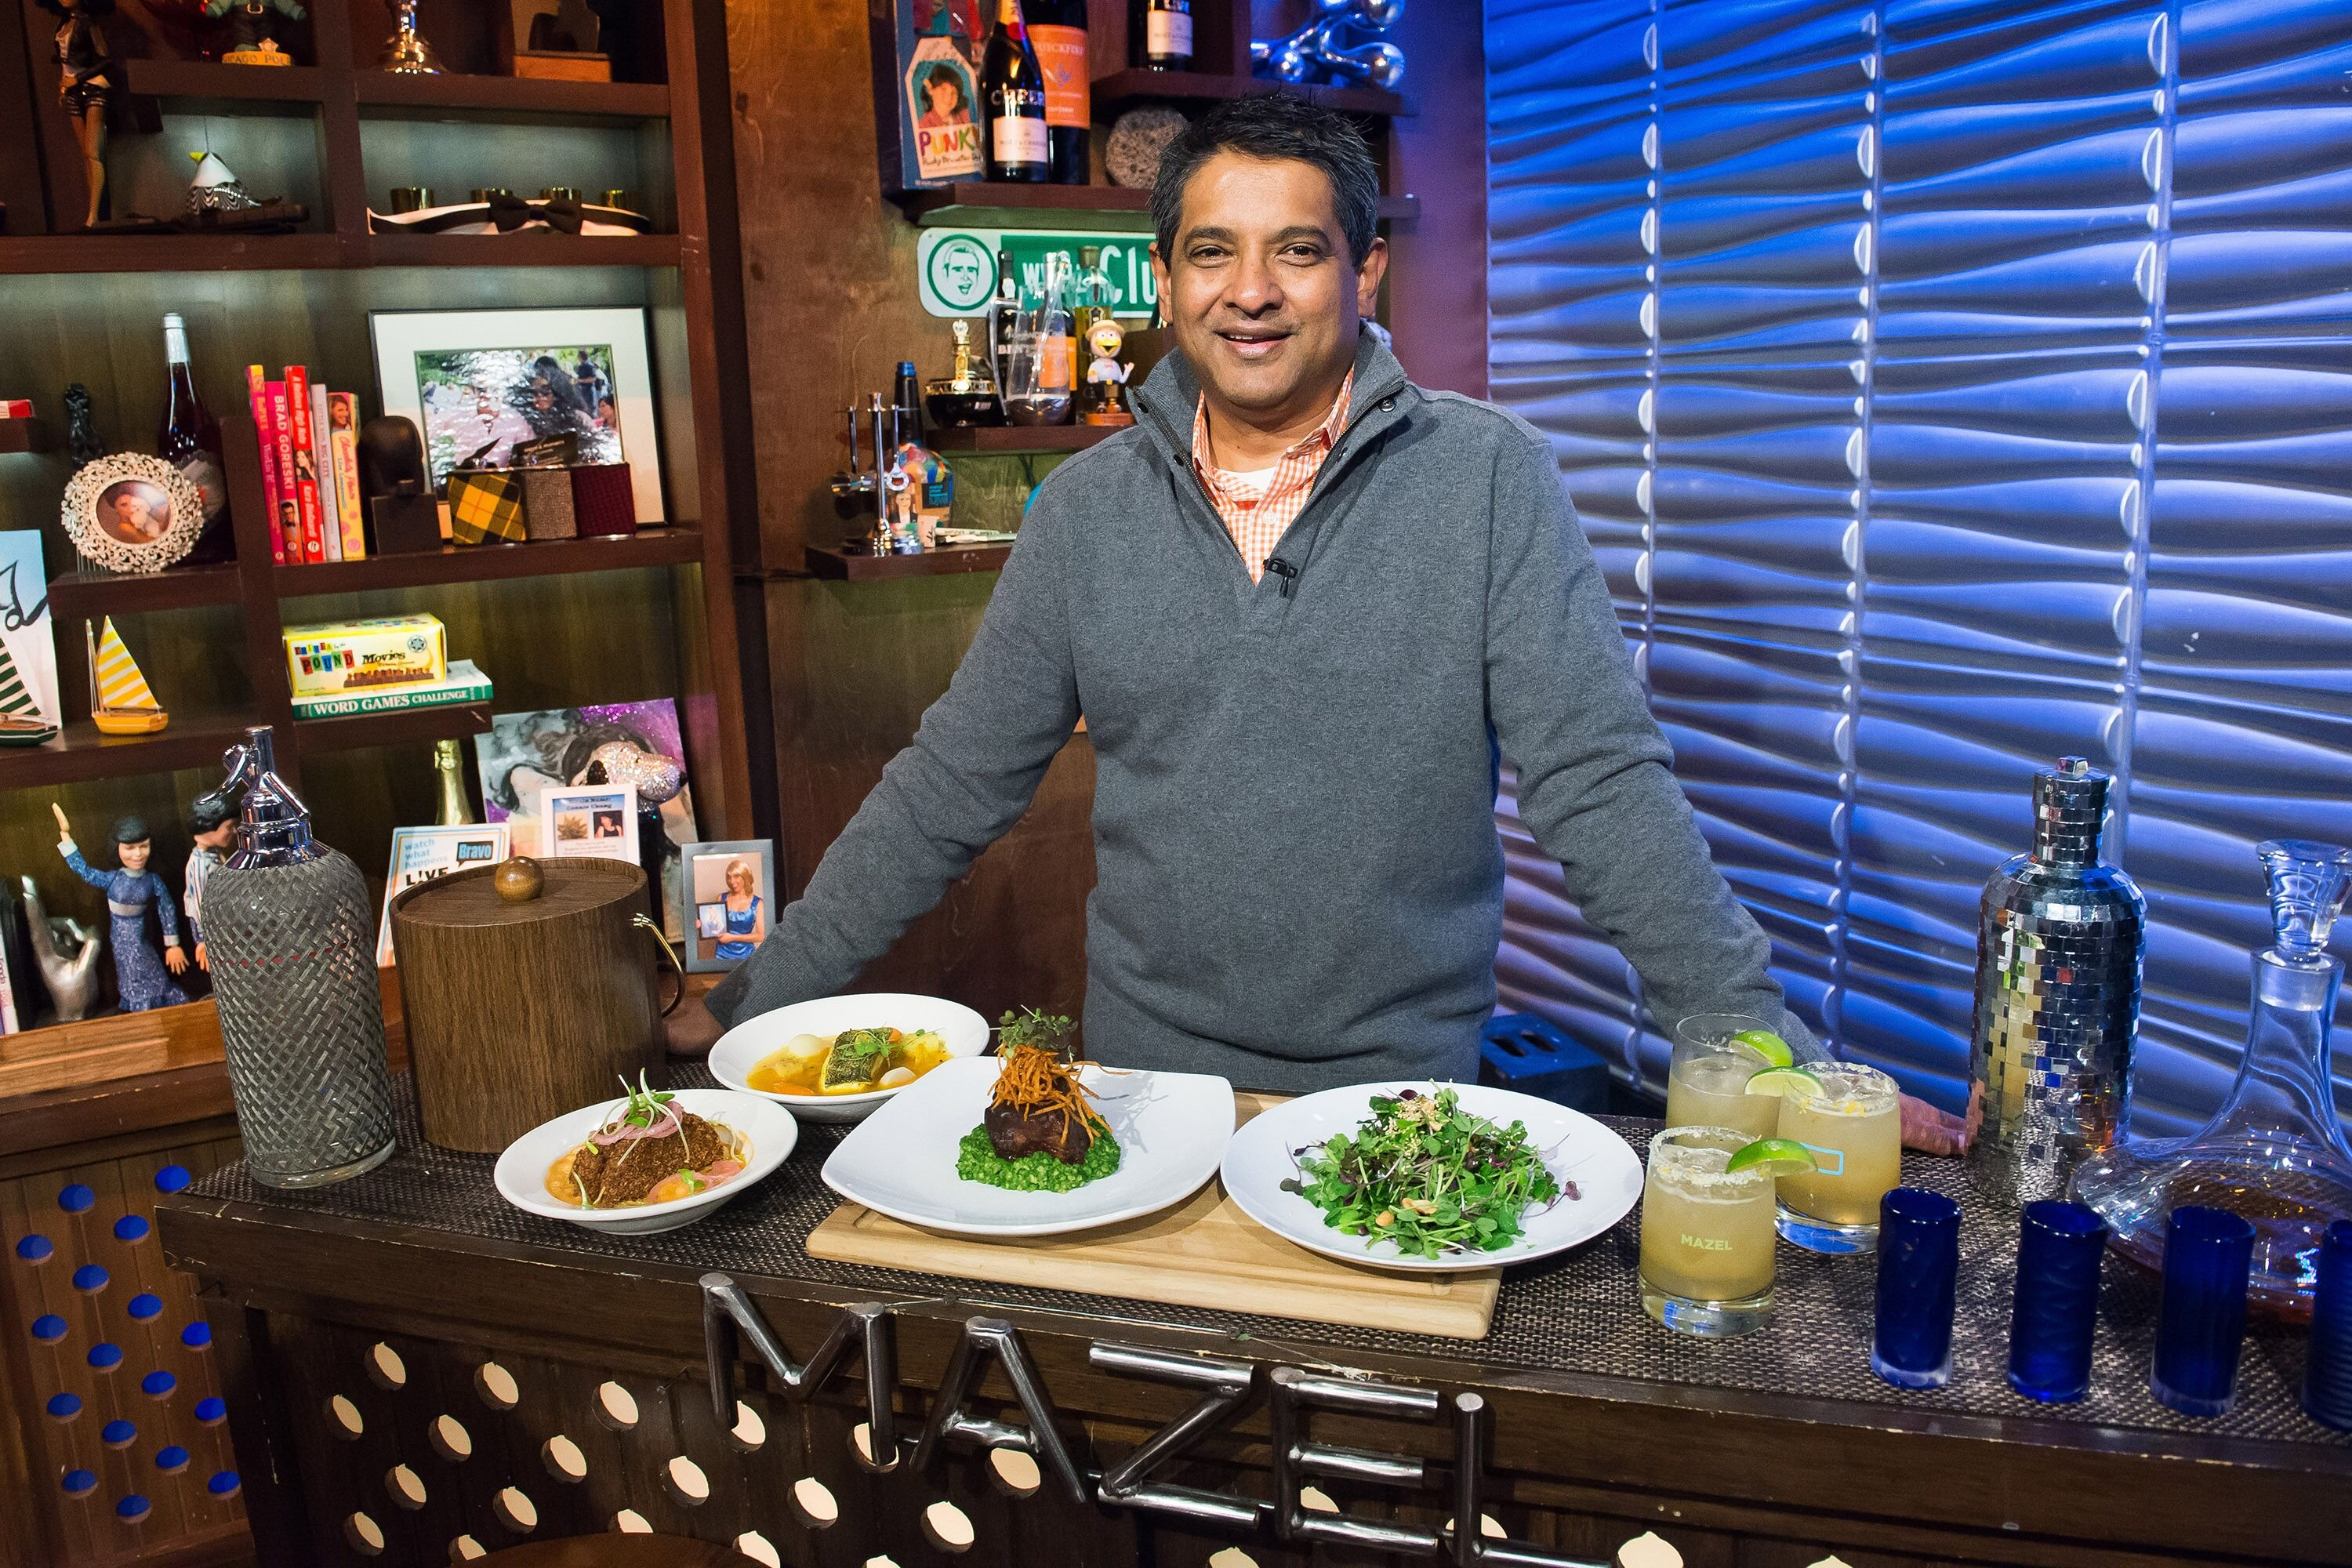 """Floyd Cardoz on """"Watch What Happens Live"""" season 12 on January 15, 2015 